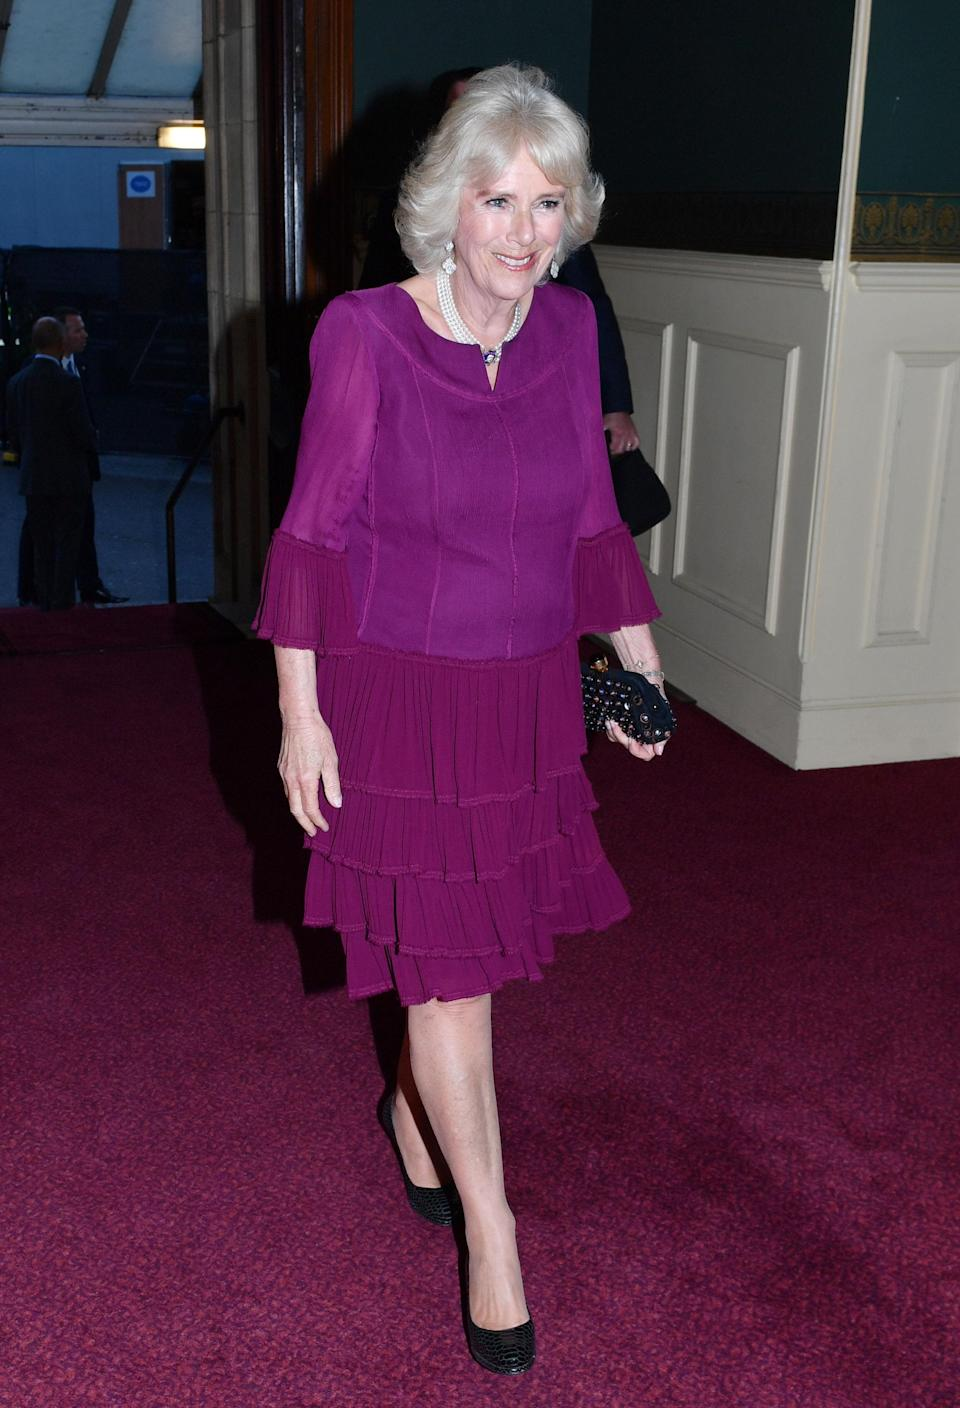 Camilla wore the earrings for the Queen's 92nd birthday celebrations in April (PA)